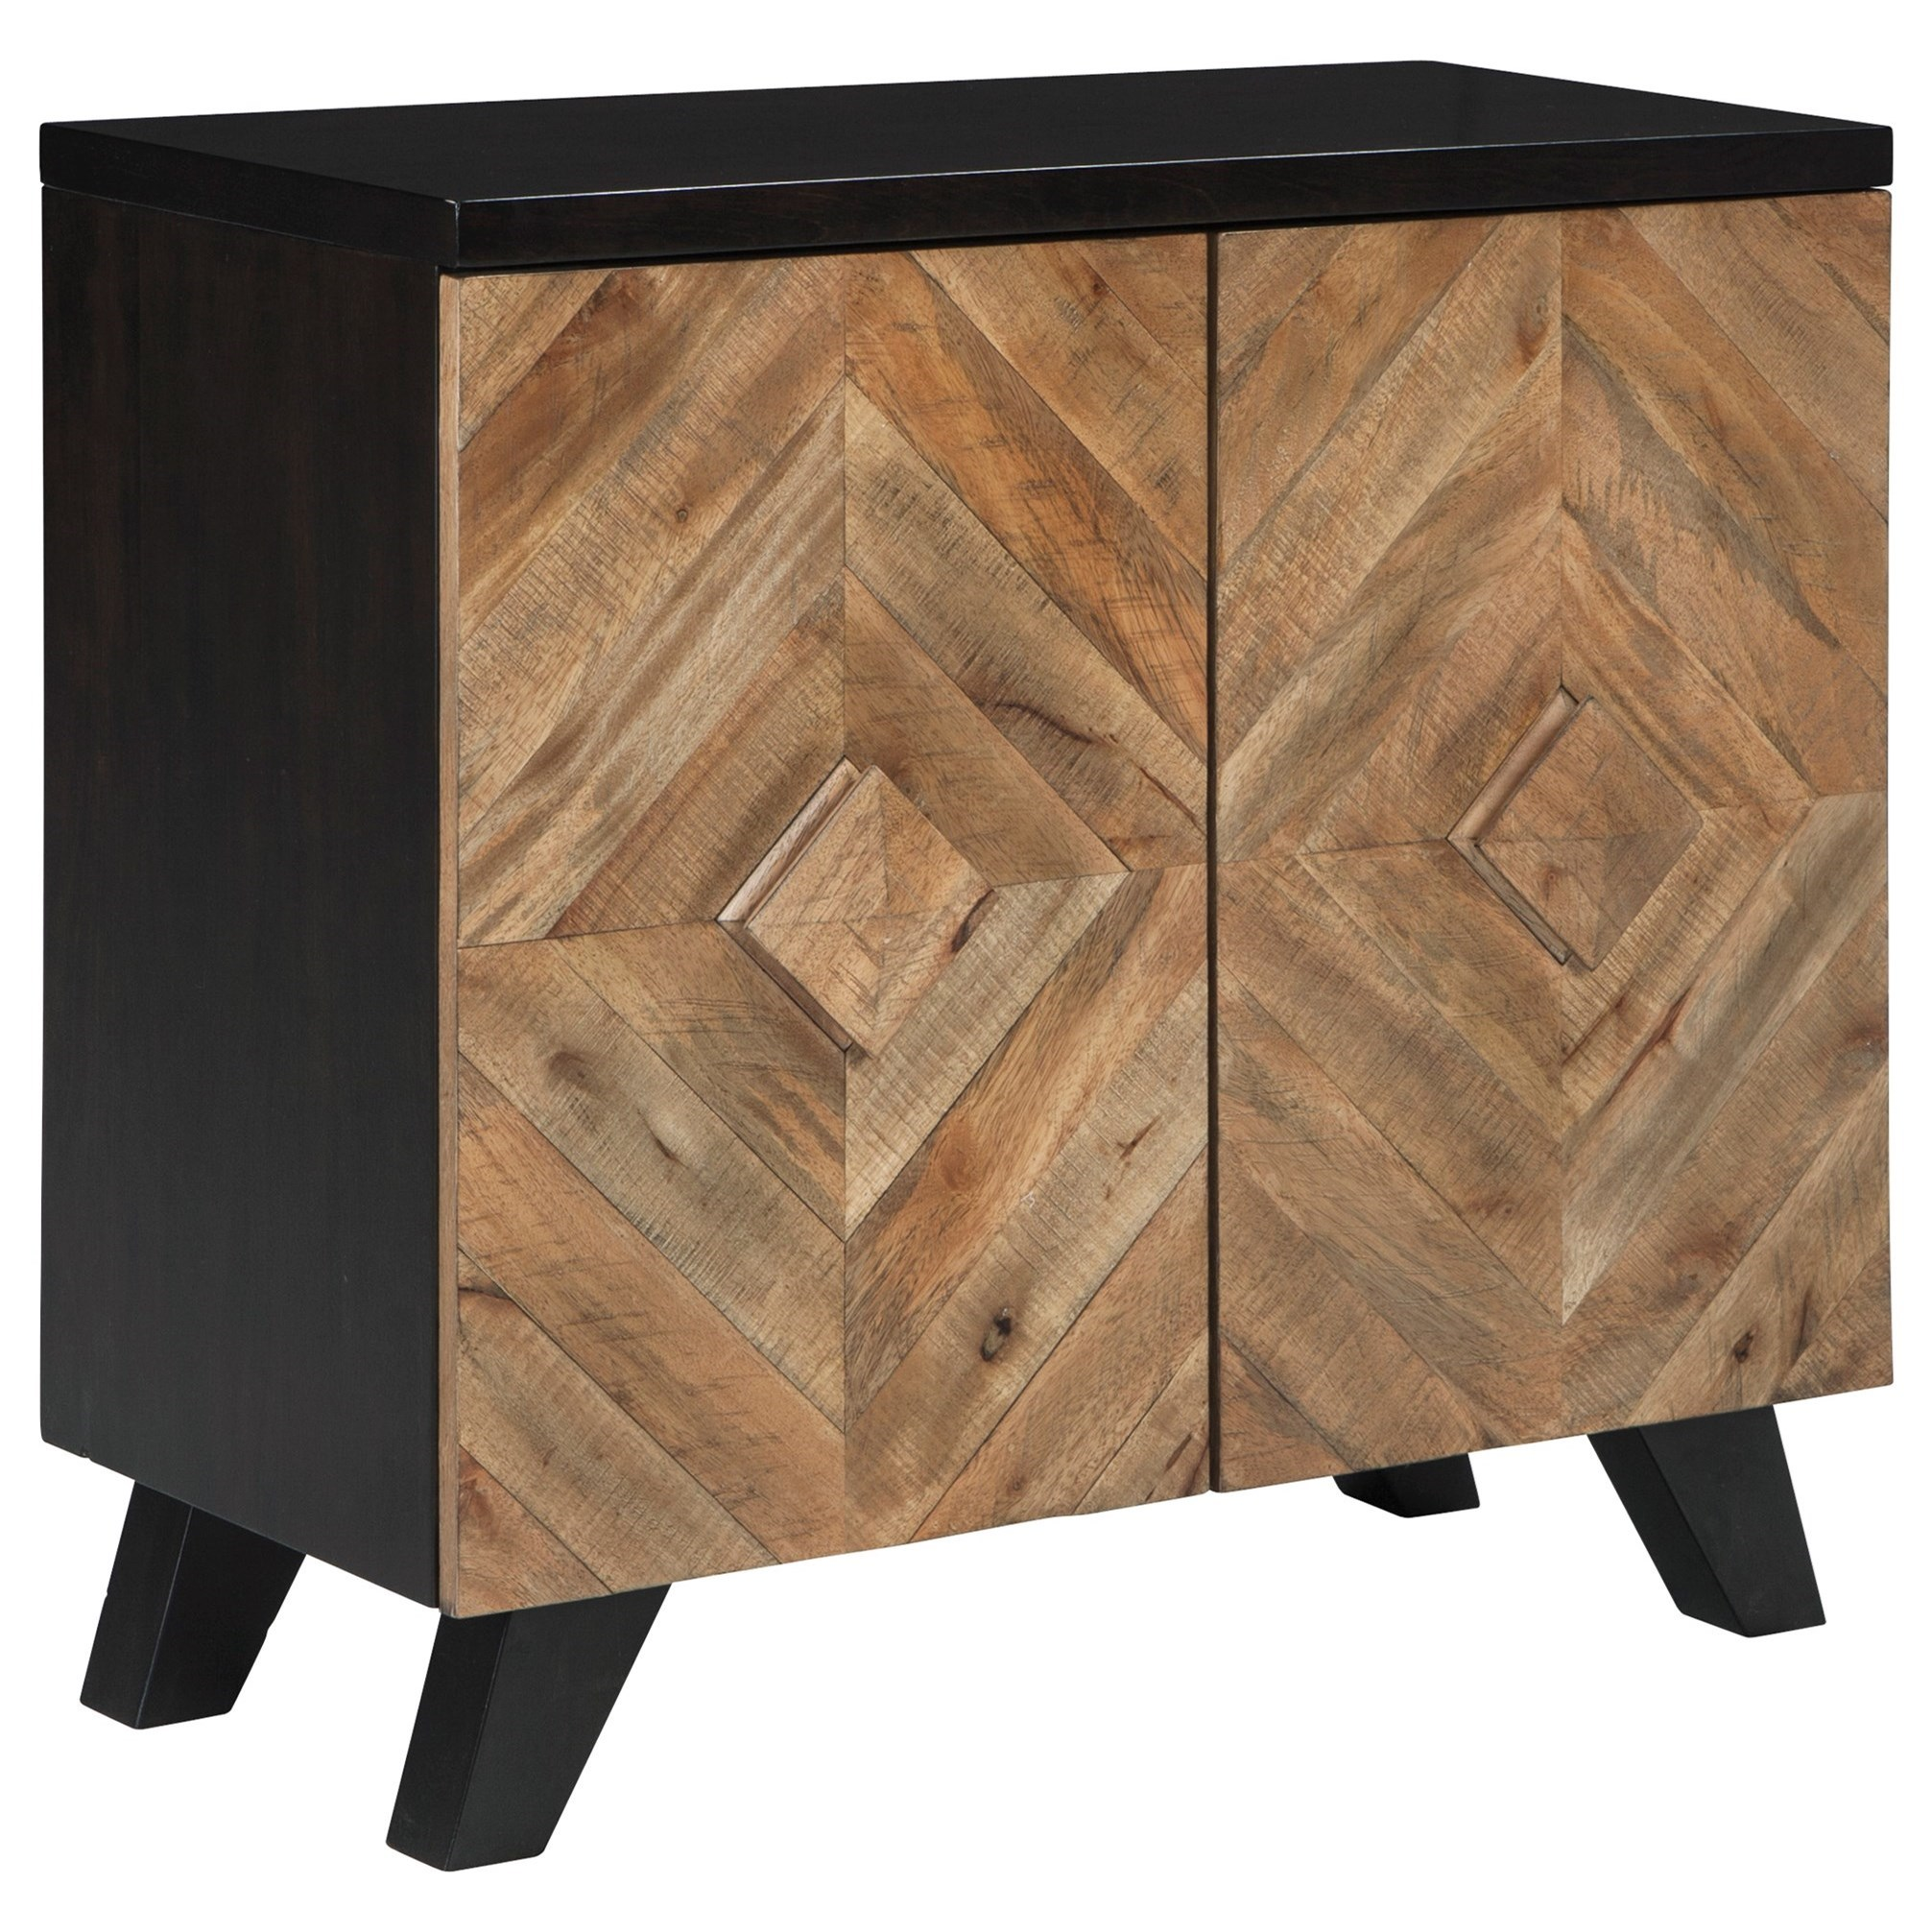 Signature Design by Ashley Robin Ridge Door Accent Cabinet - Item Number: A4000030